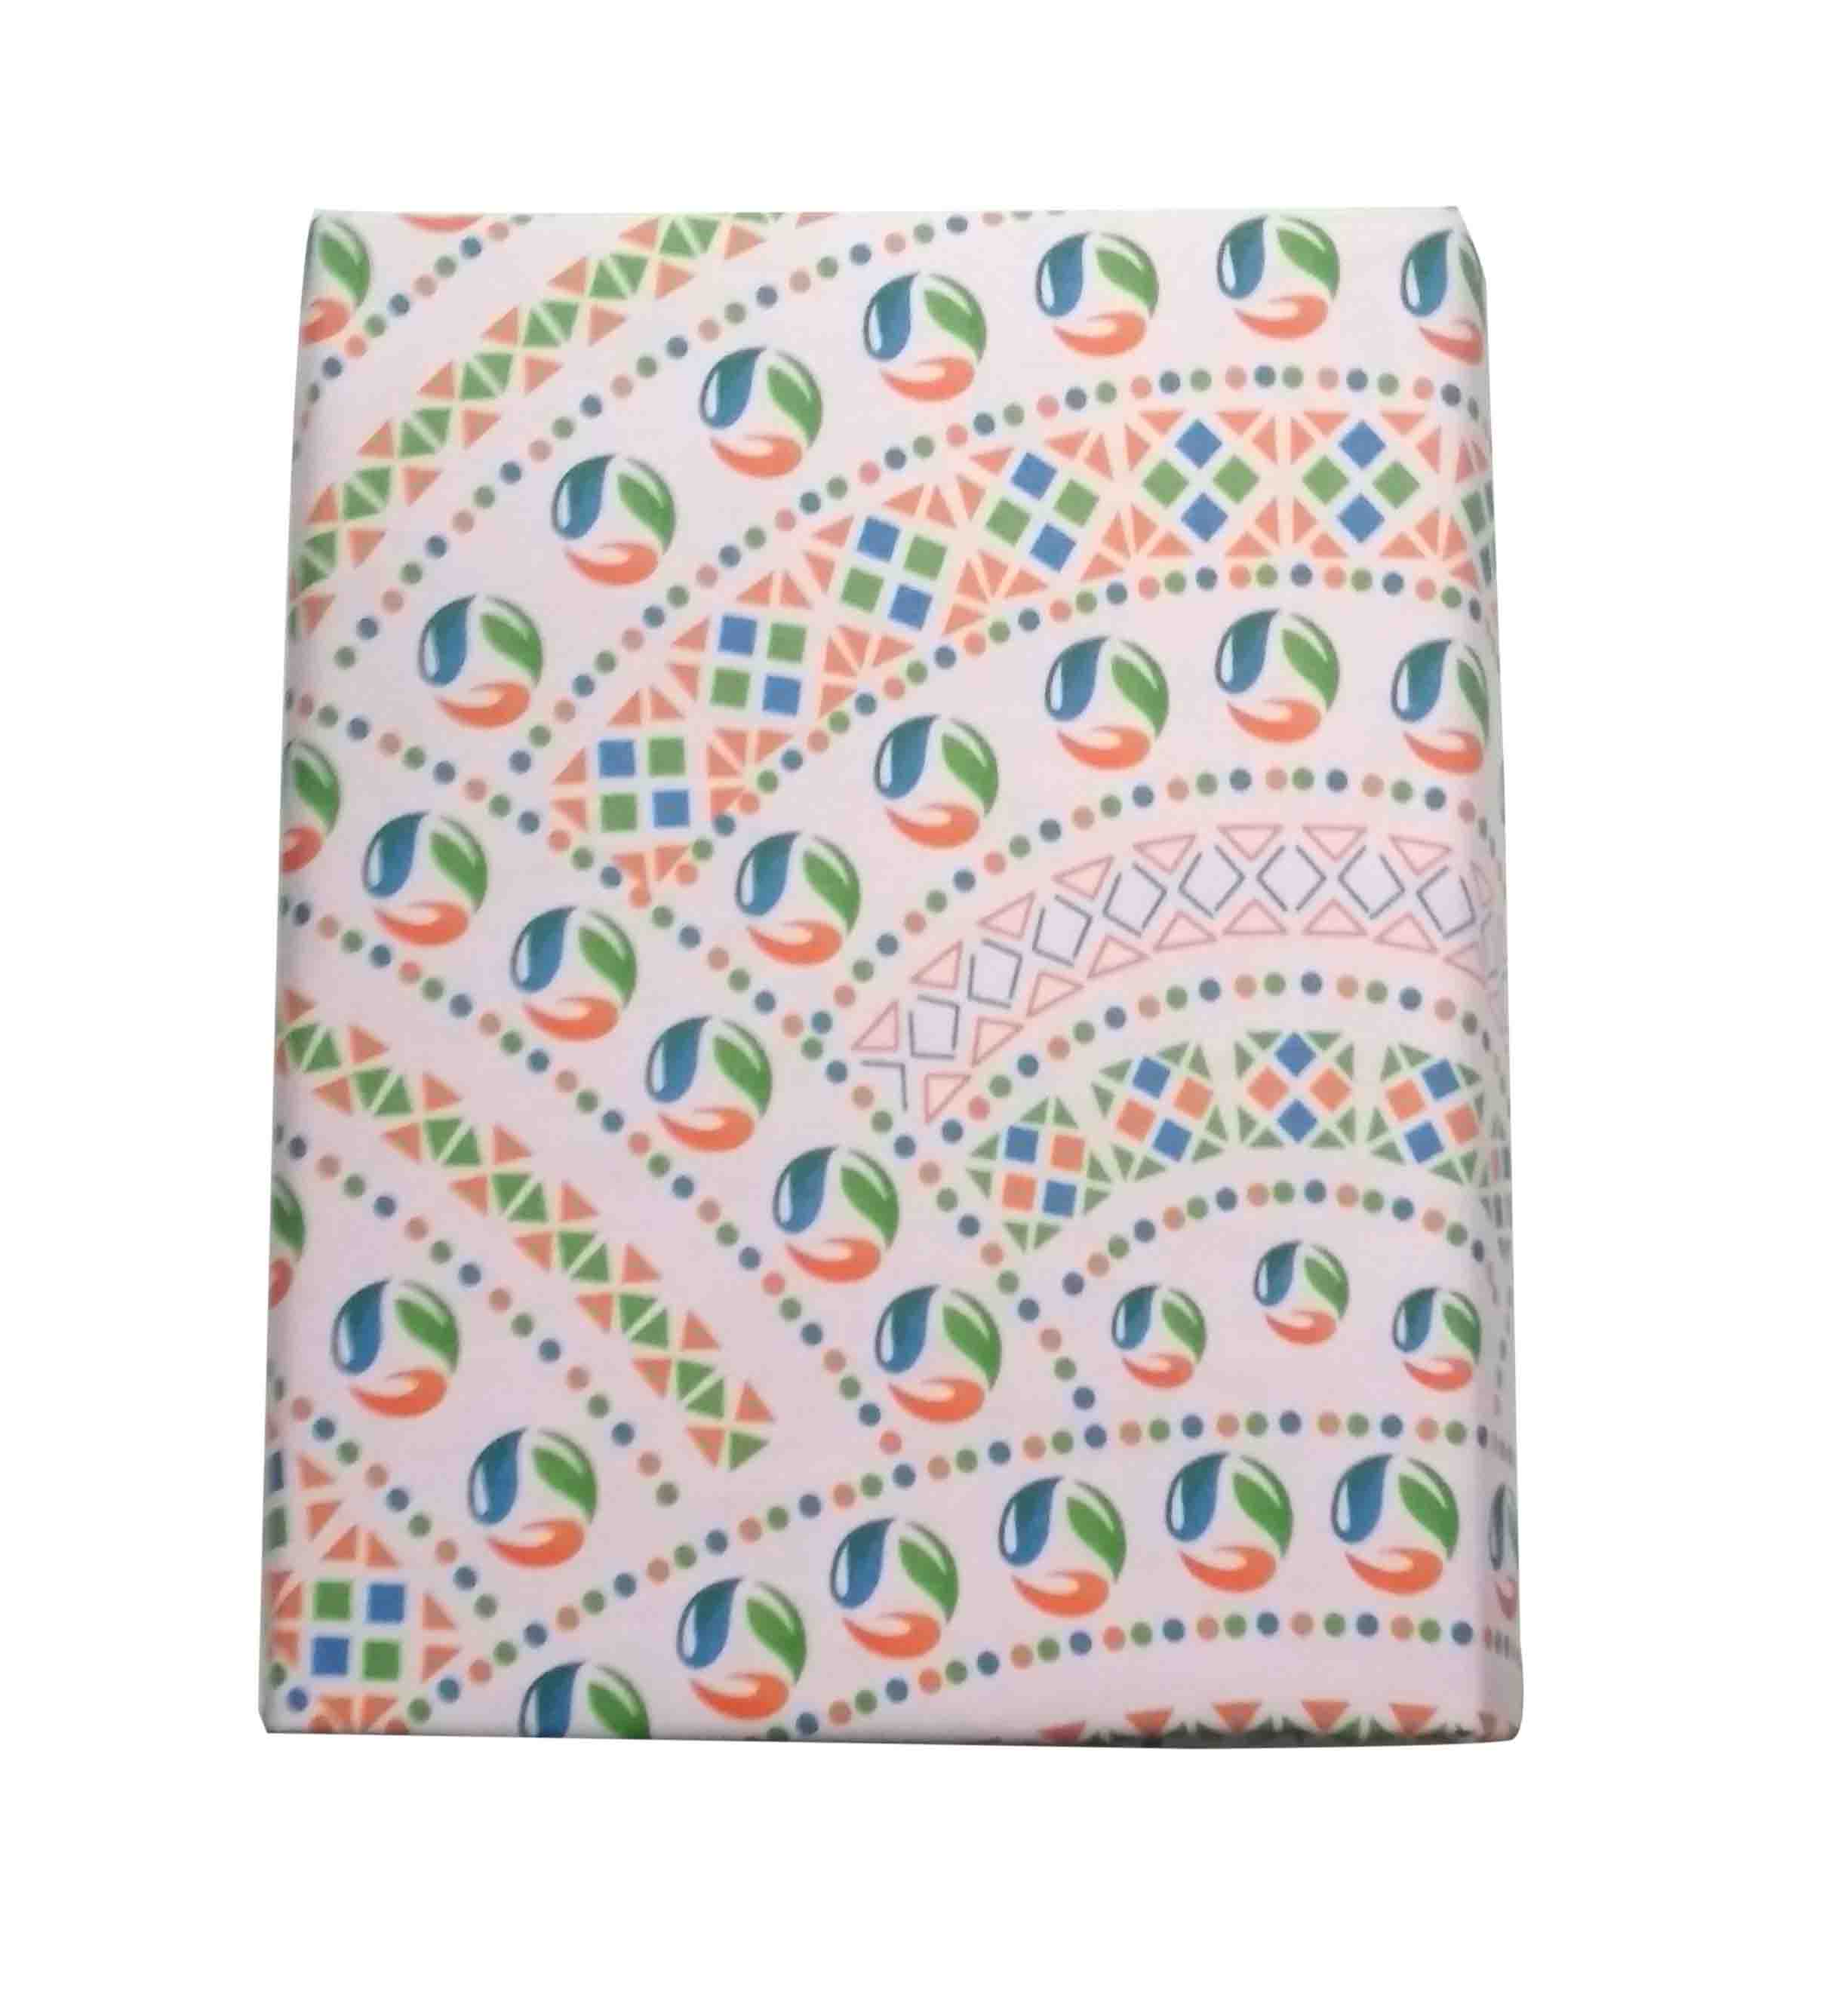 VIVID MAY 01-DESIGN 01 100 % COTTON DOUBLE BEDSHEET